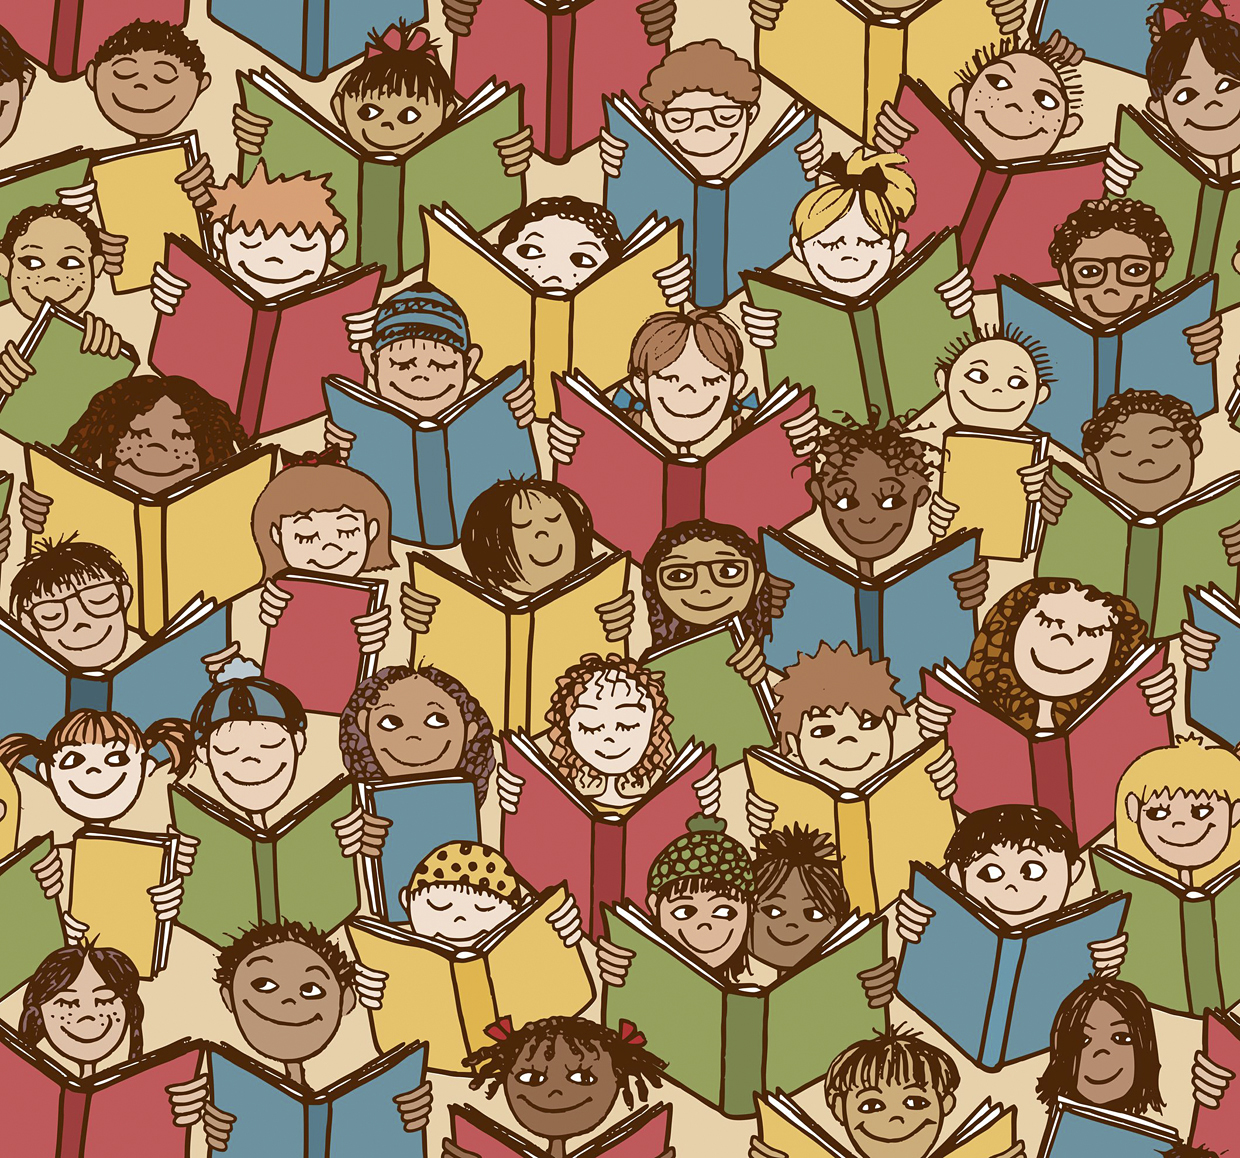 48042816 - seamless pattern of kids reading colorful books